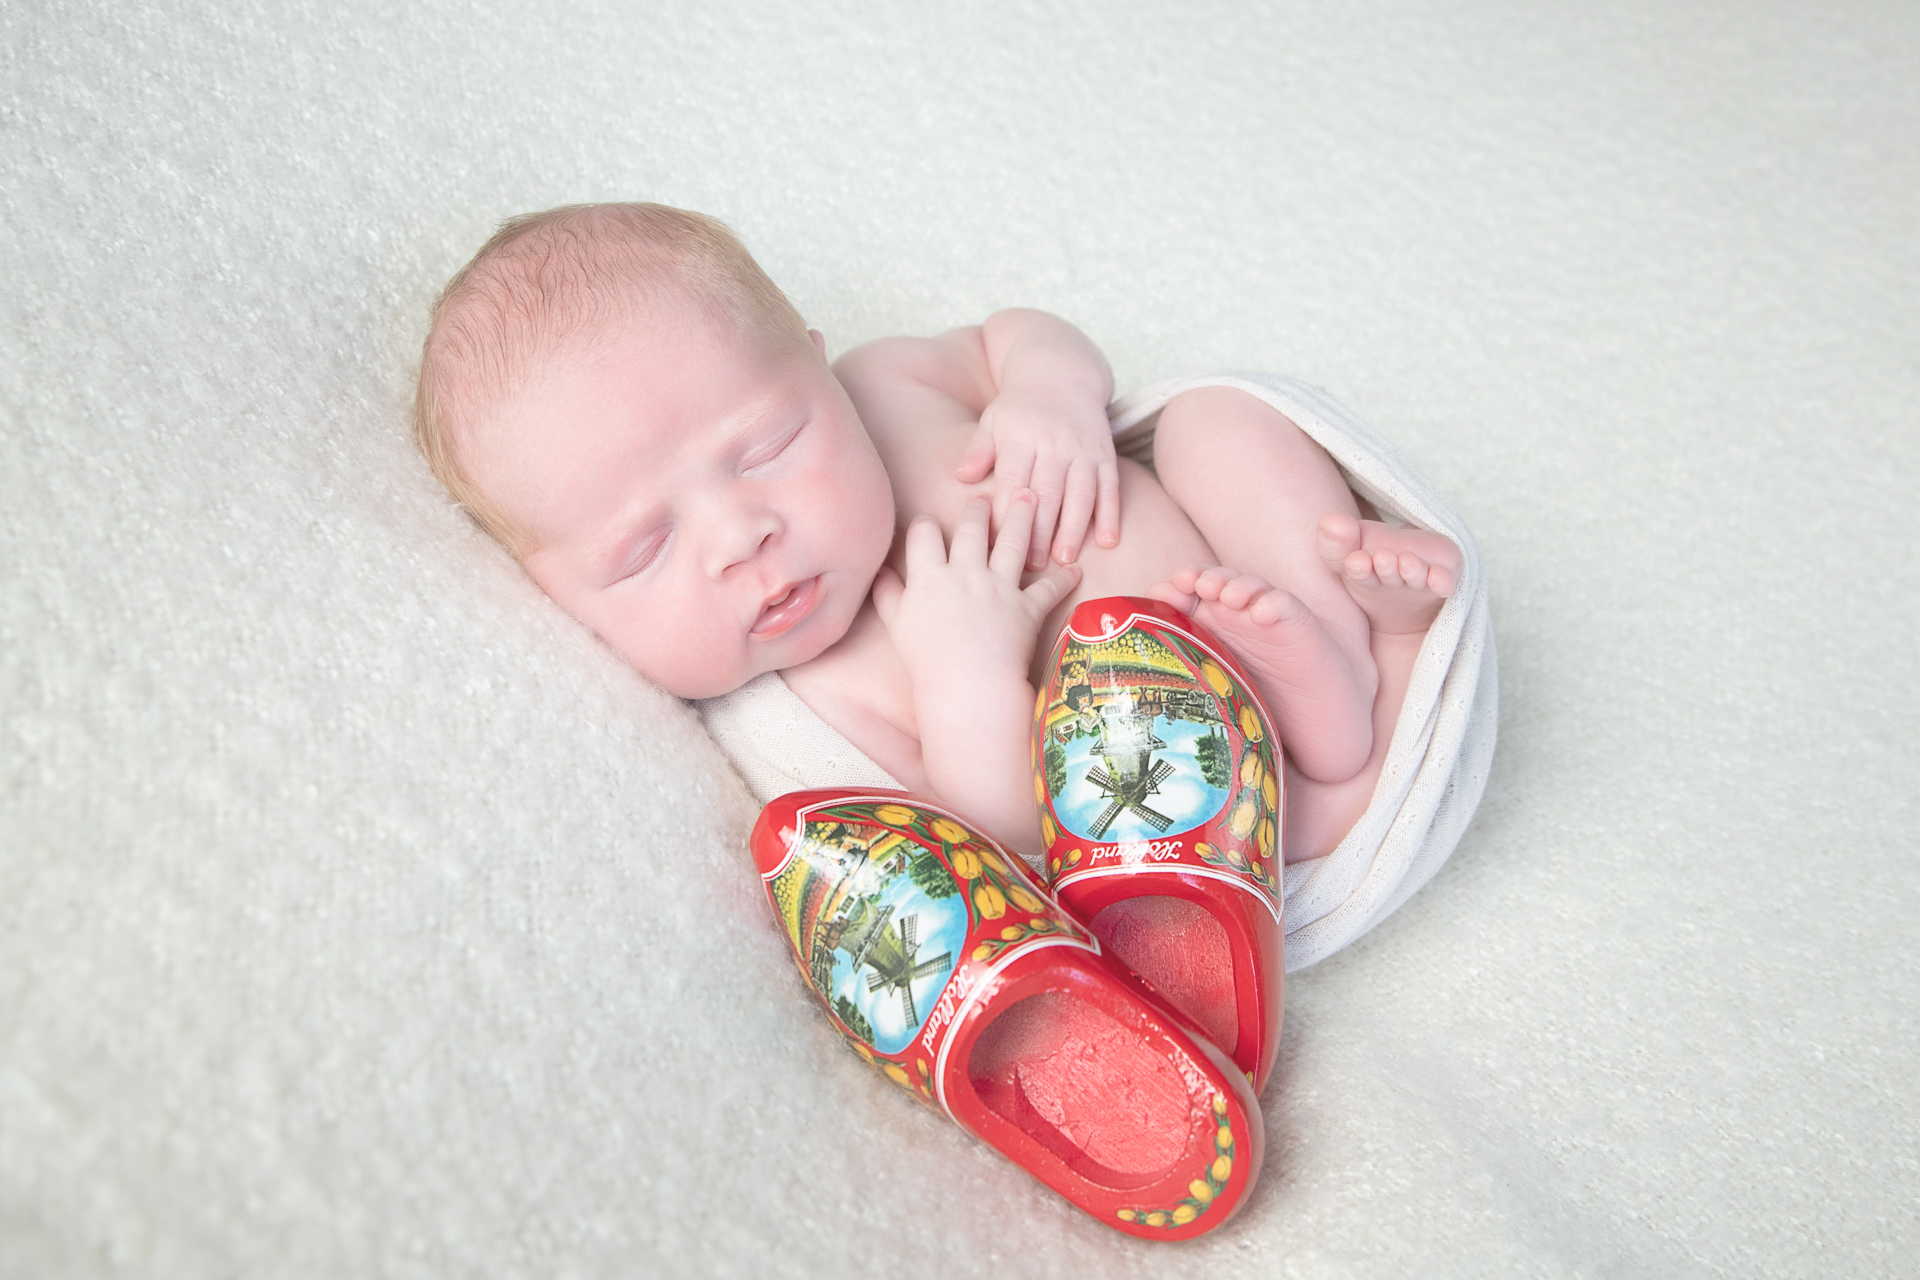 Newborn baby rests while wearing light color wrap. A pair of red shoes decorates the scene. Light beige backdrop.